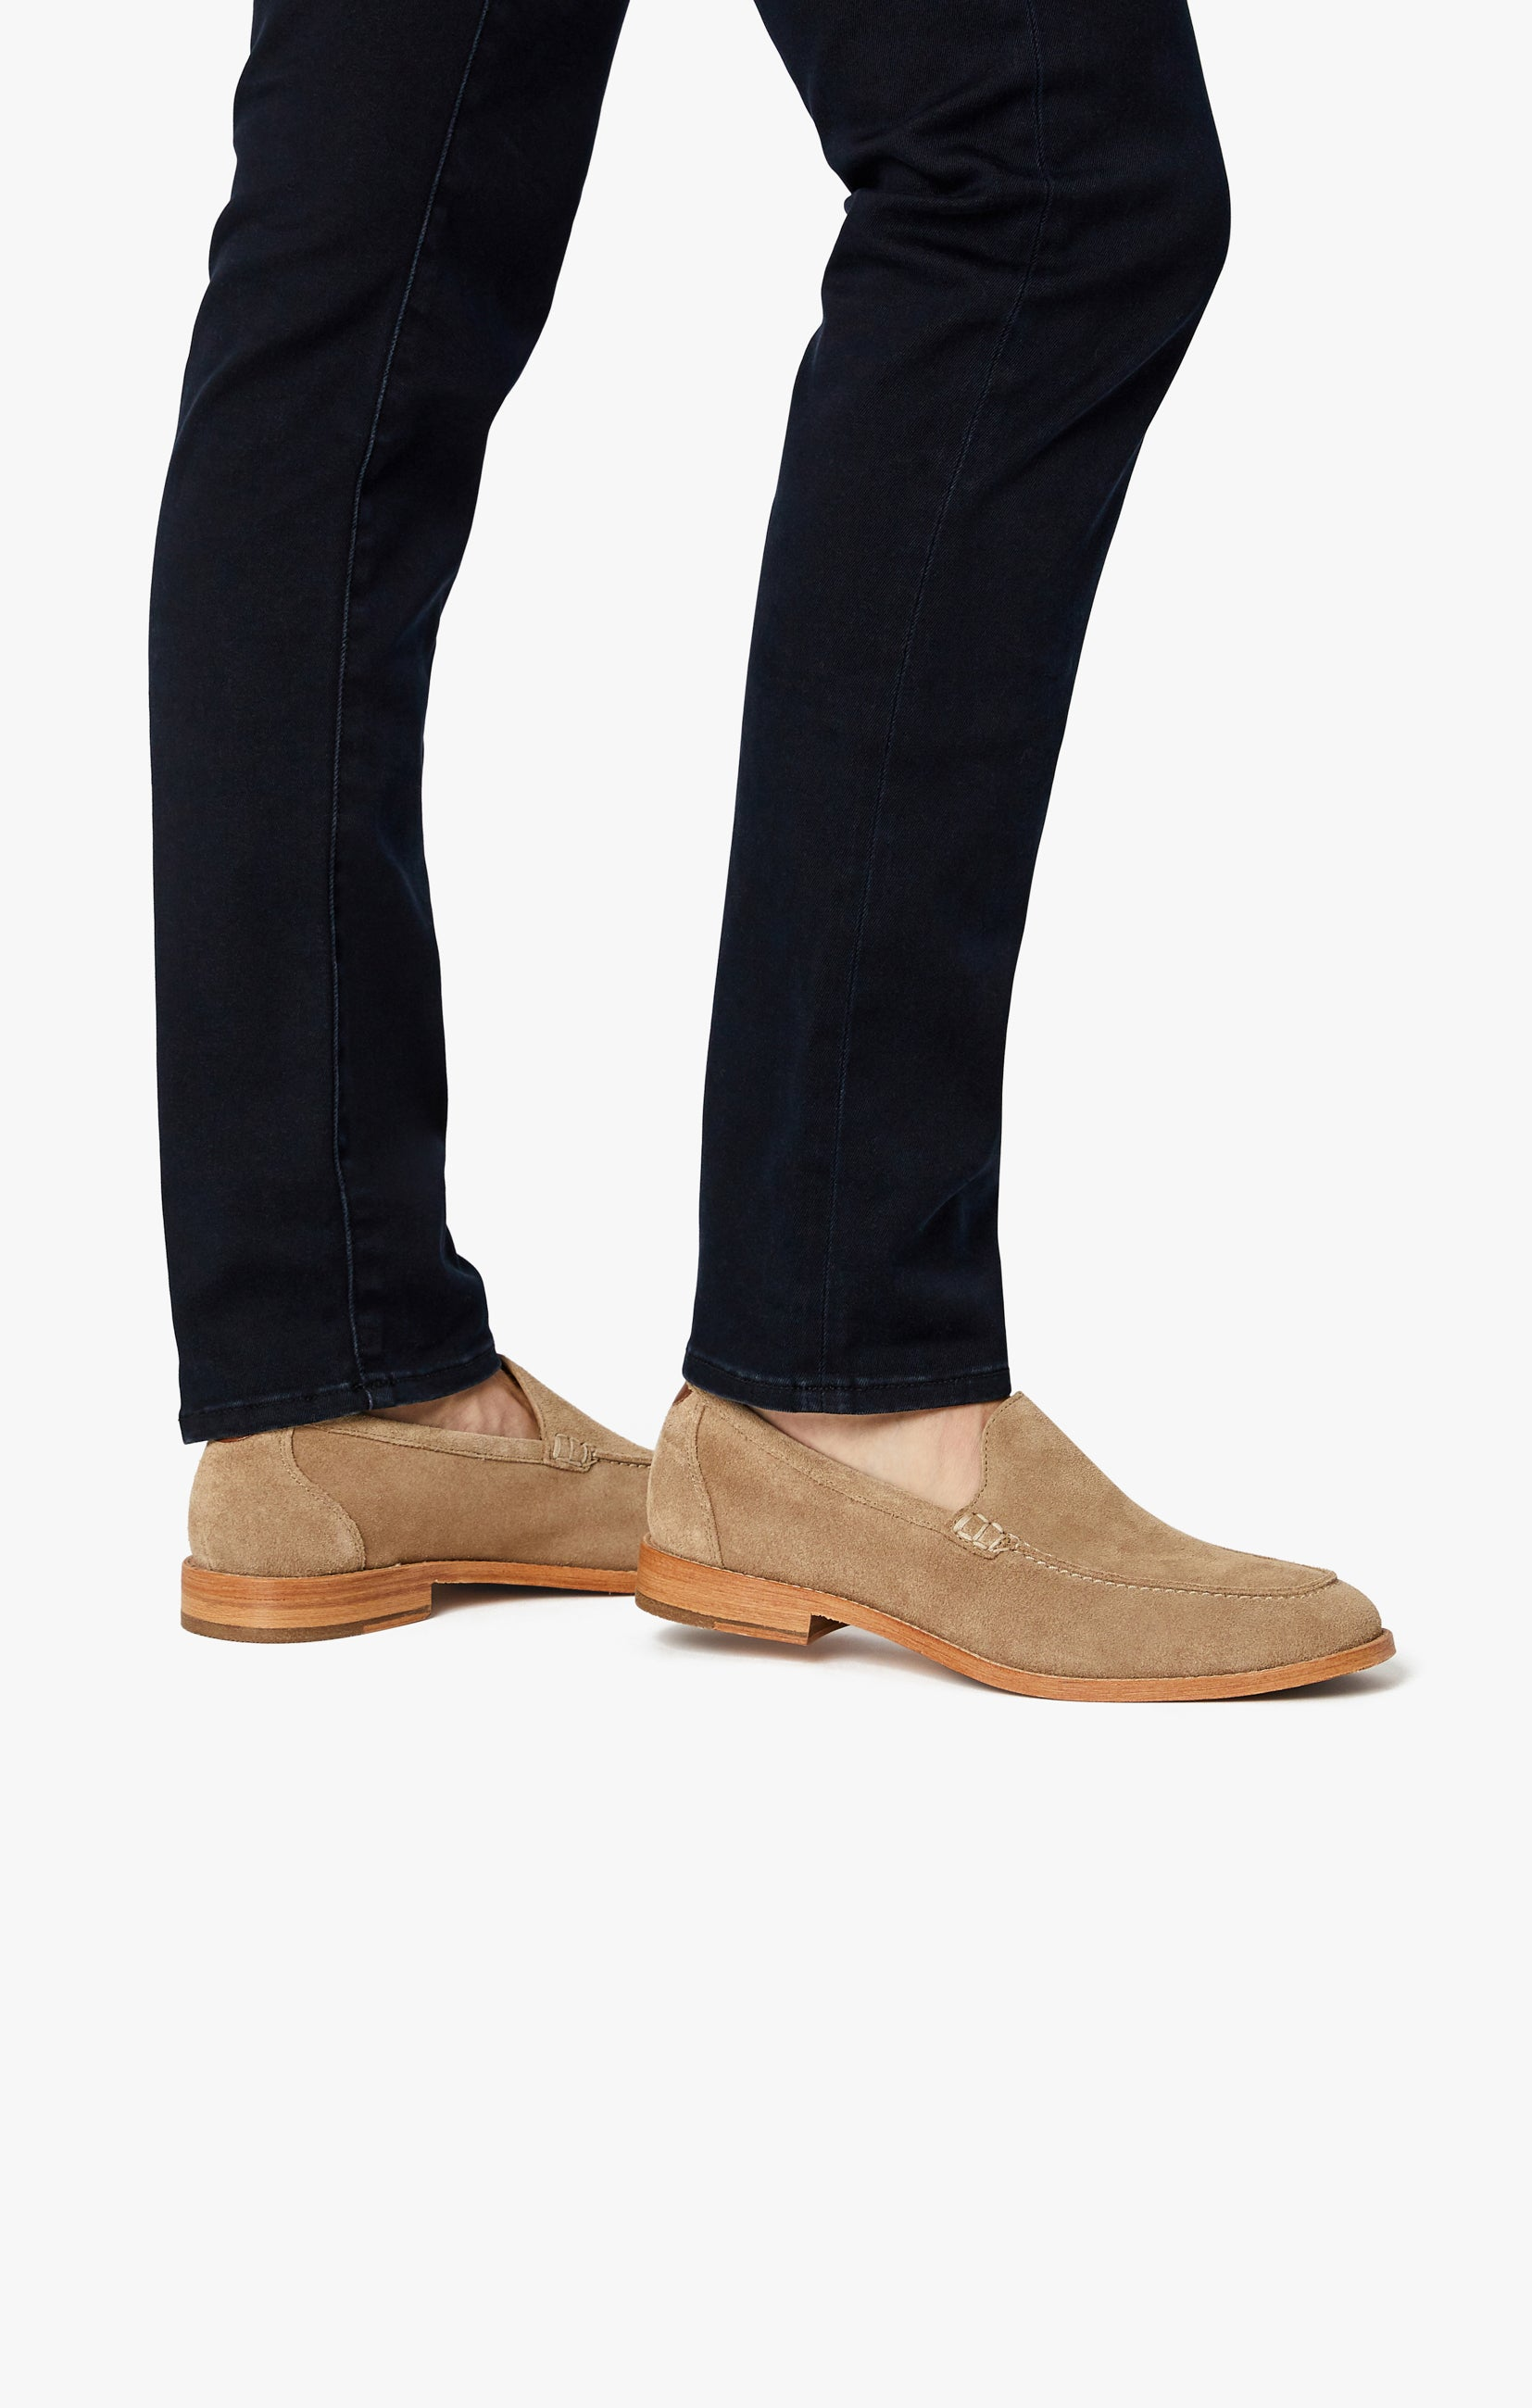 Courage Straight Leg Jeans in Blue Smart Casual Image 5